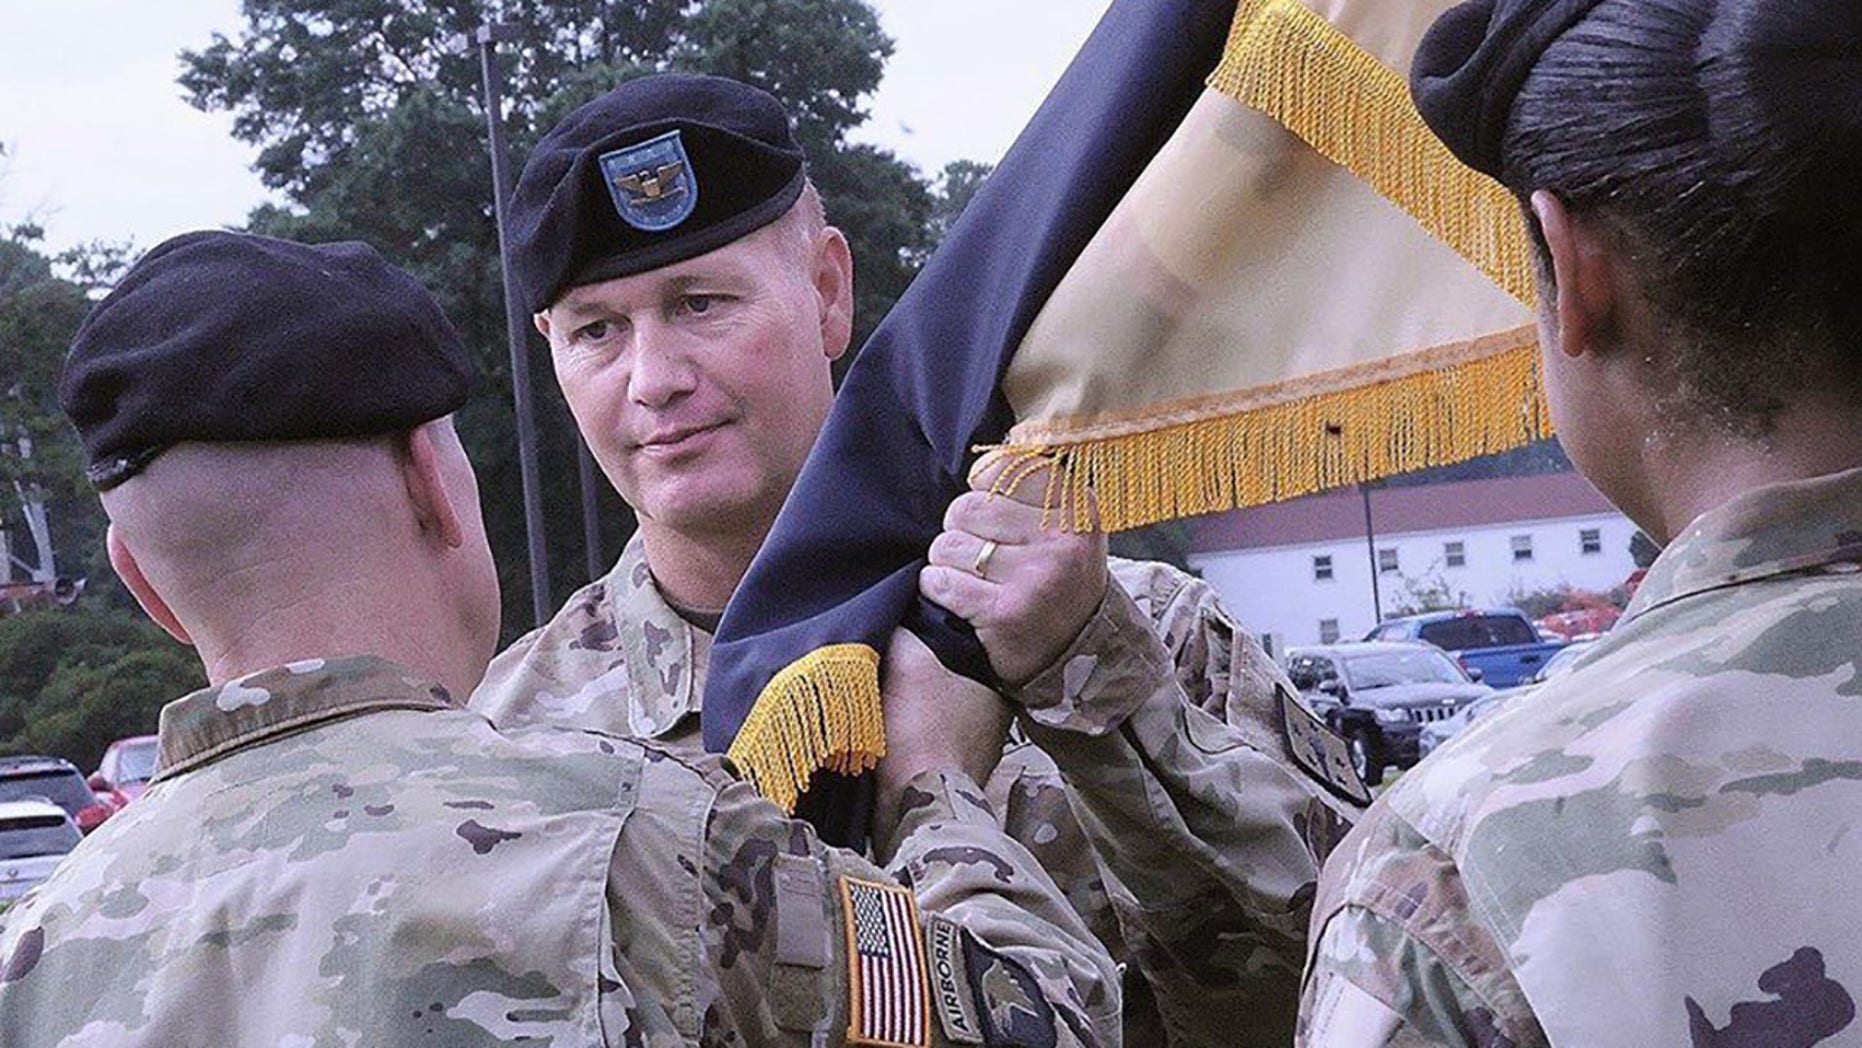 Col.Gregory S. Townsend joined the Army in 1996.